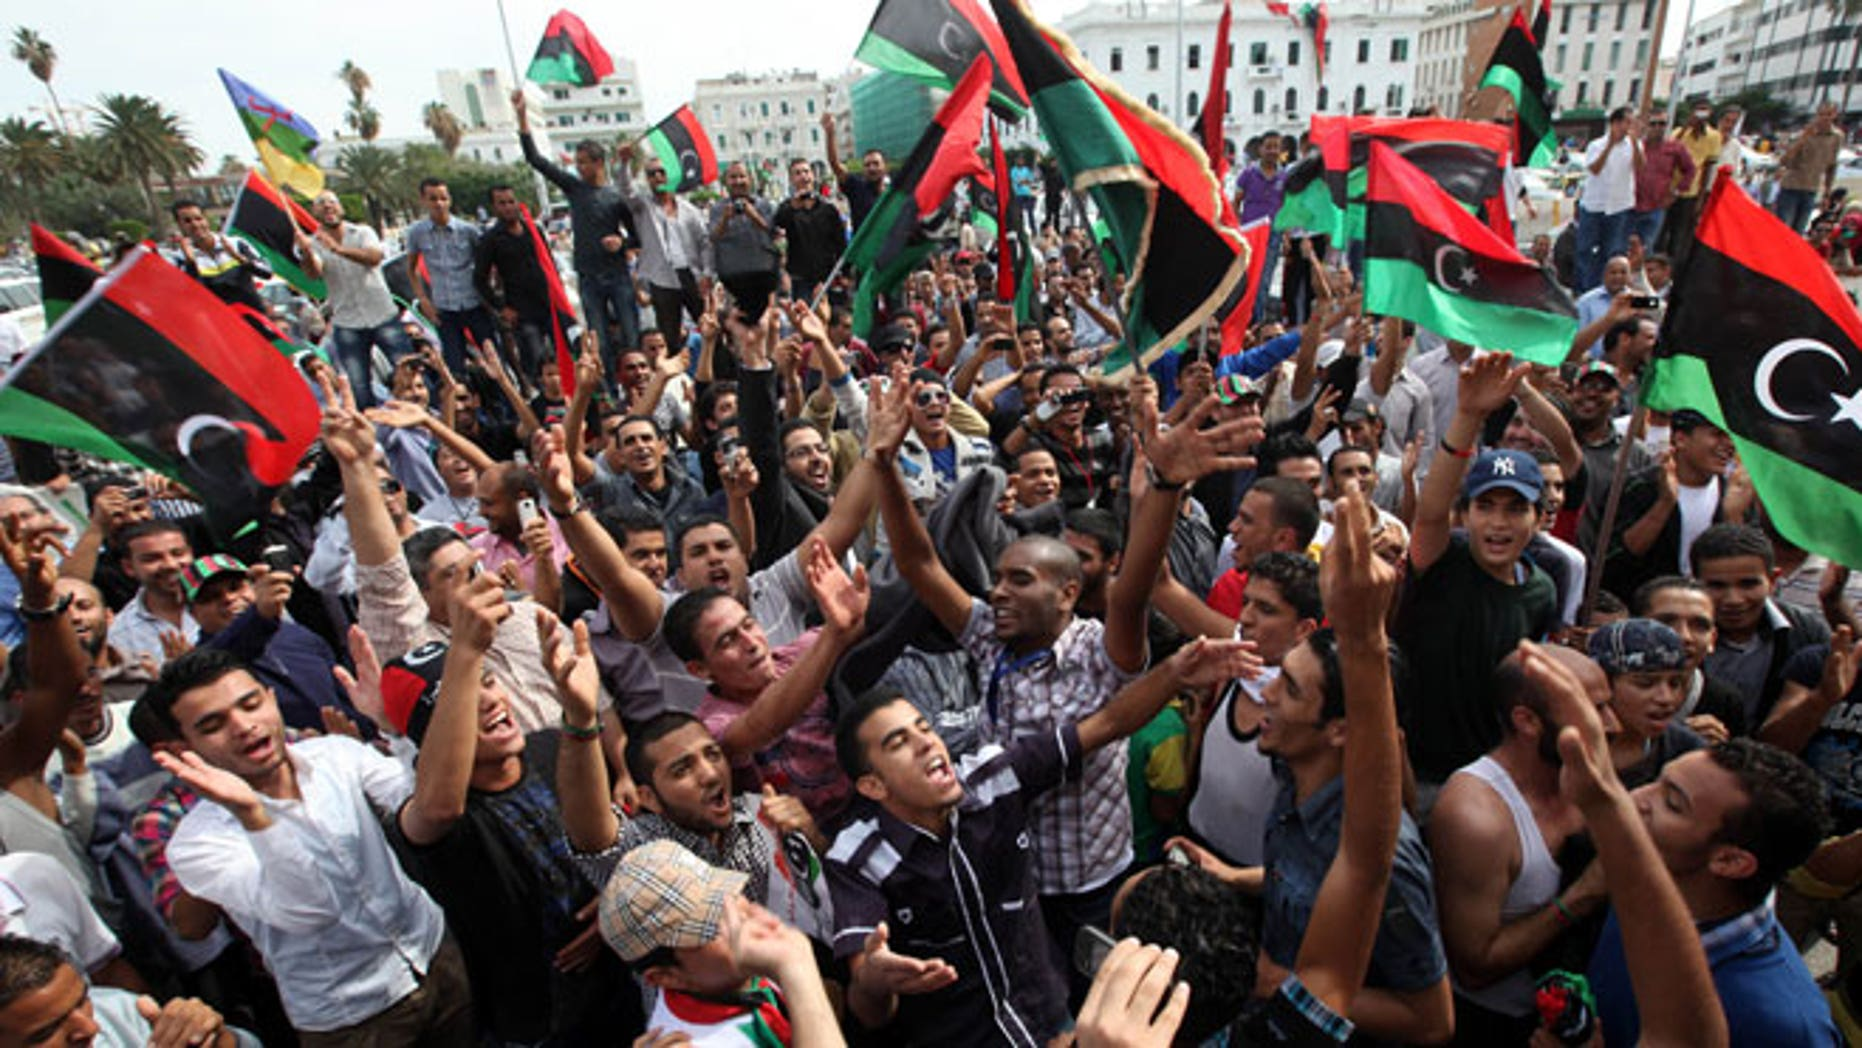 Libyan residents celebrate in Tripoli, Libya.